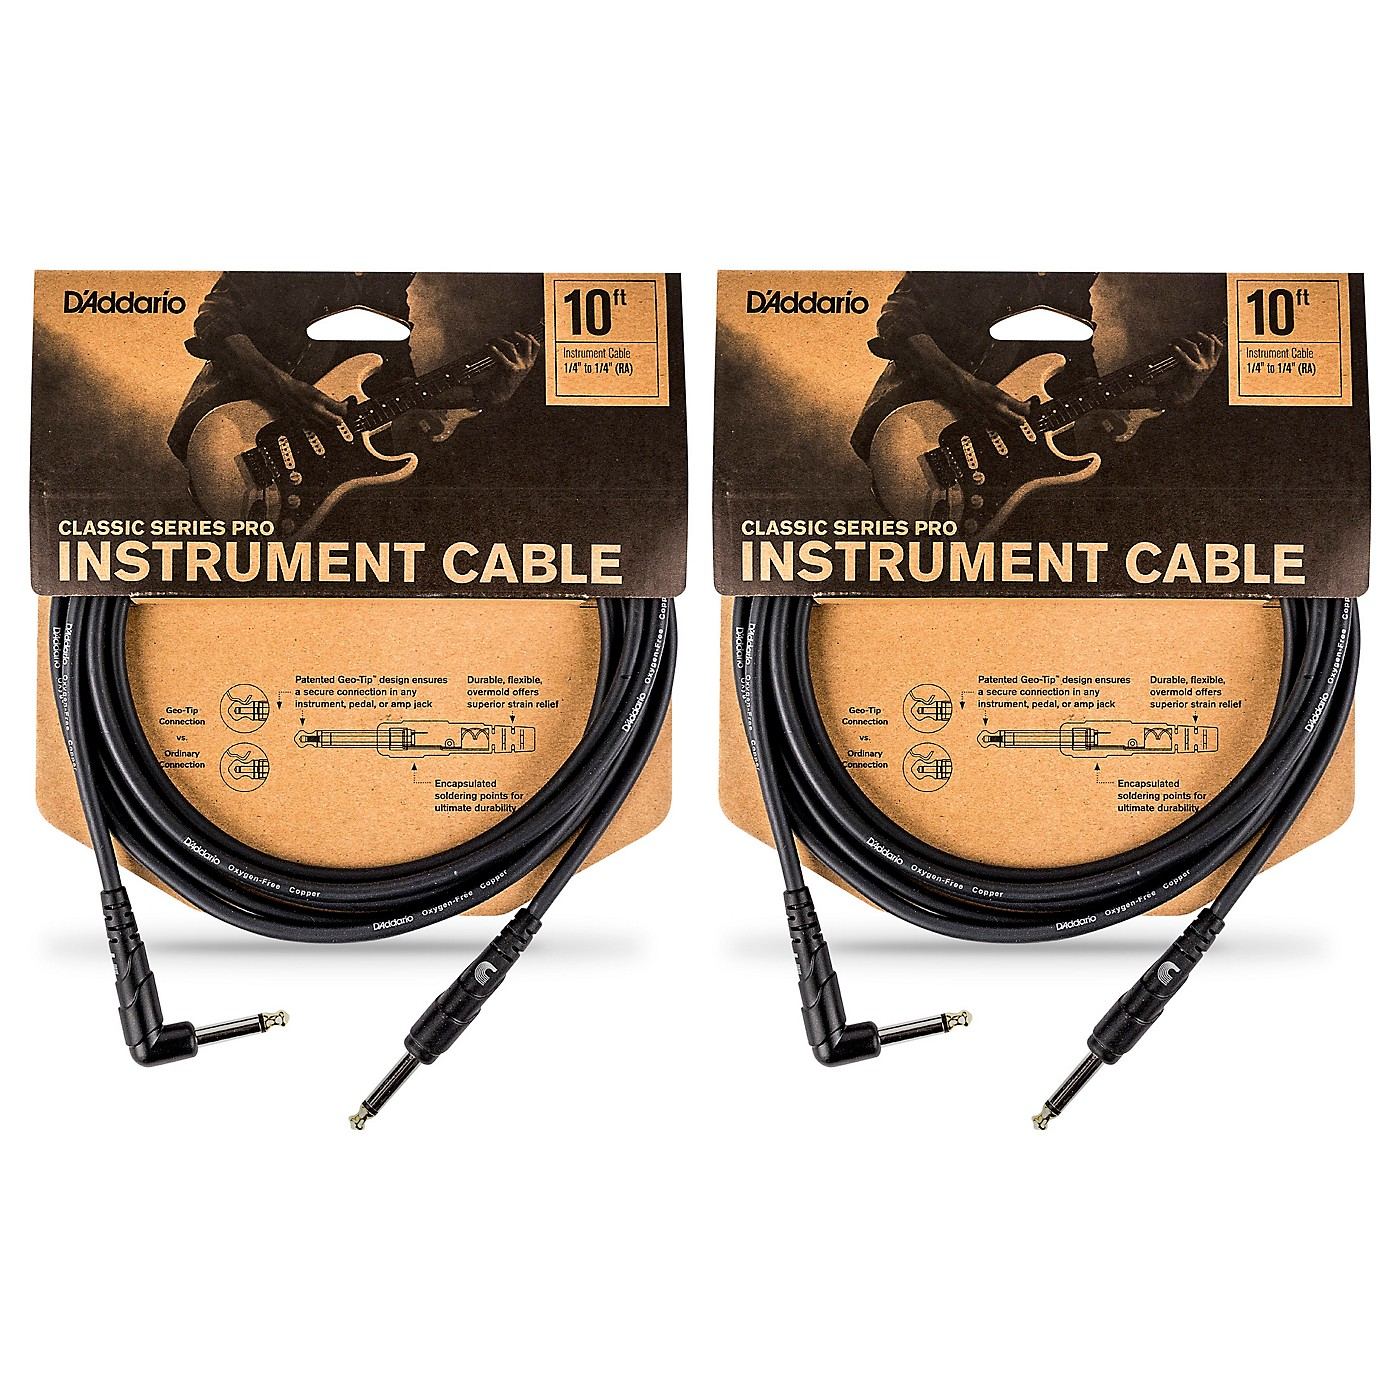 D'Addario Classic Pro Series Instrument Cable, Right Angle Plug -10 ft. - 2-Pack thumbnail